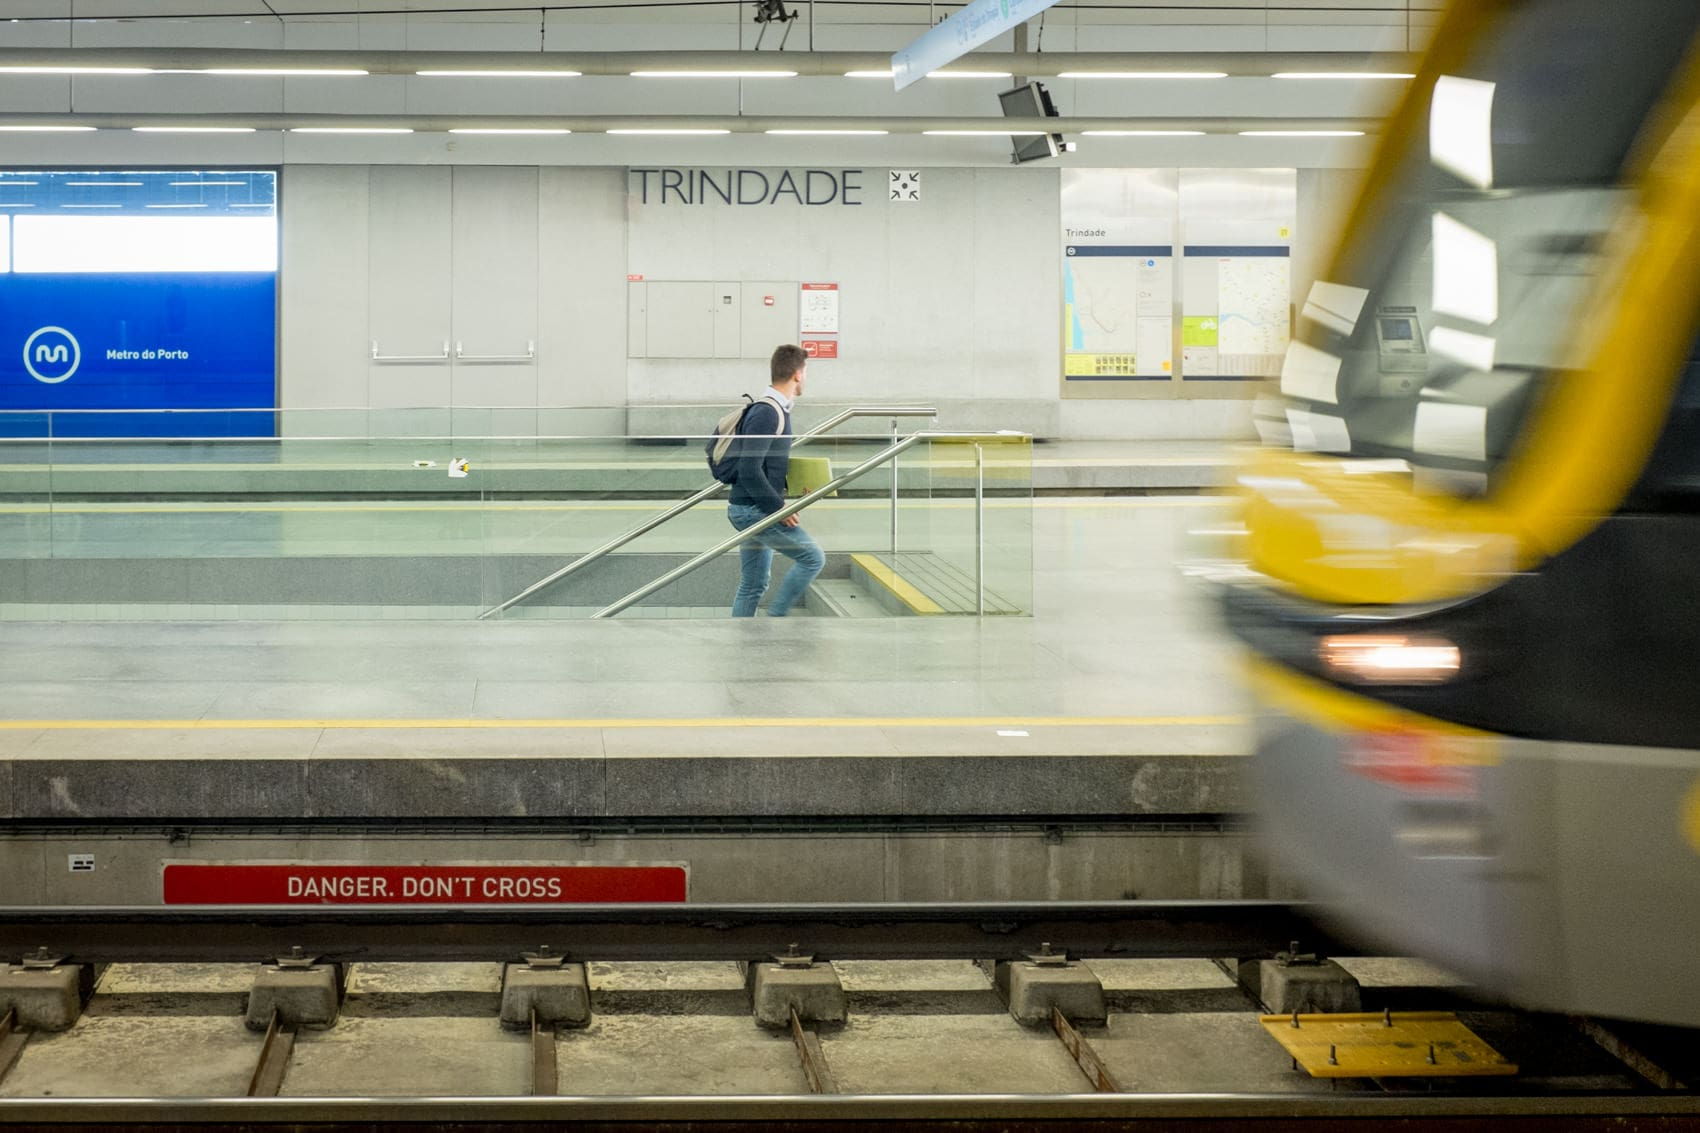 trindade station in porto, travel photography